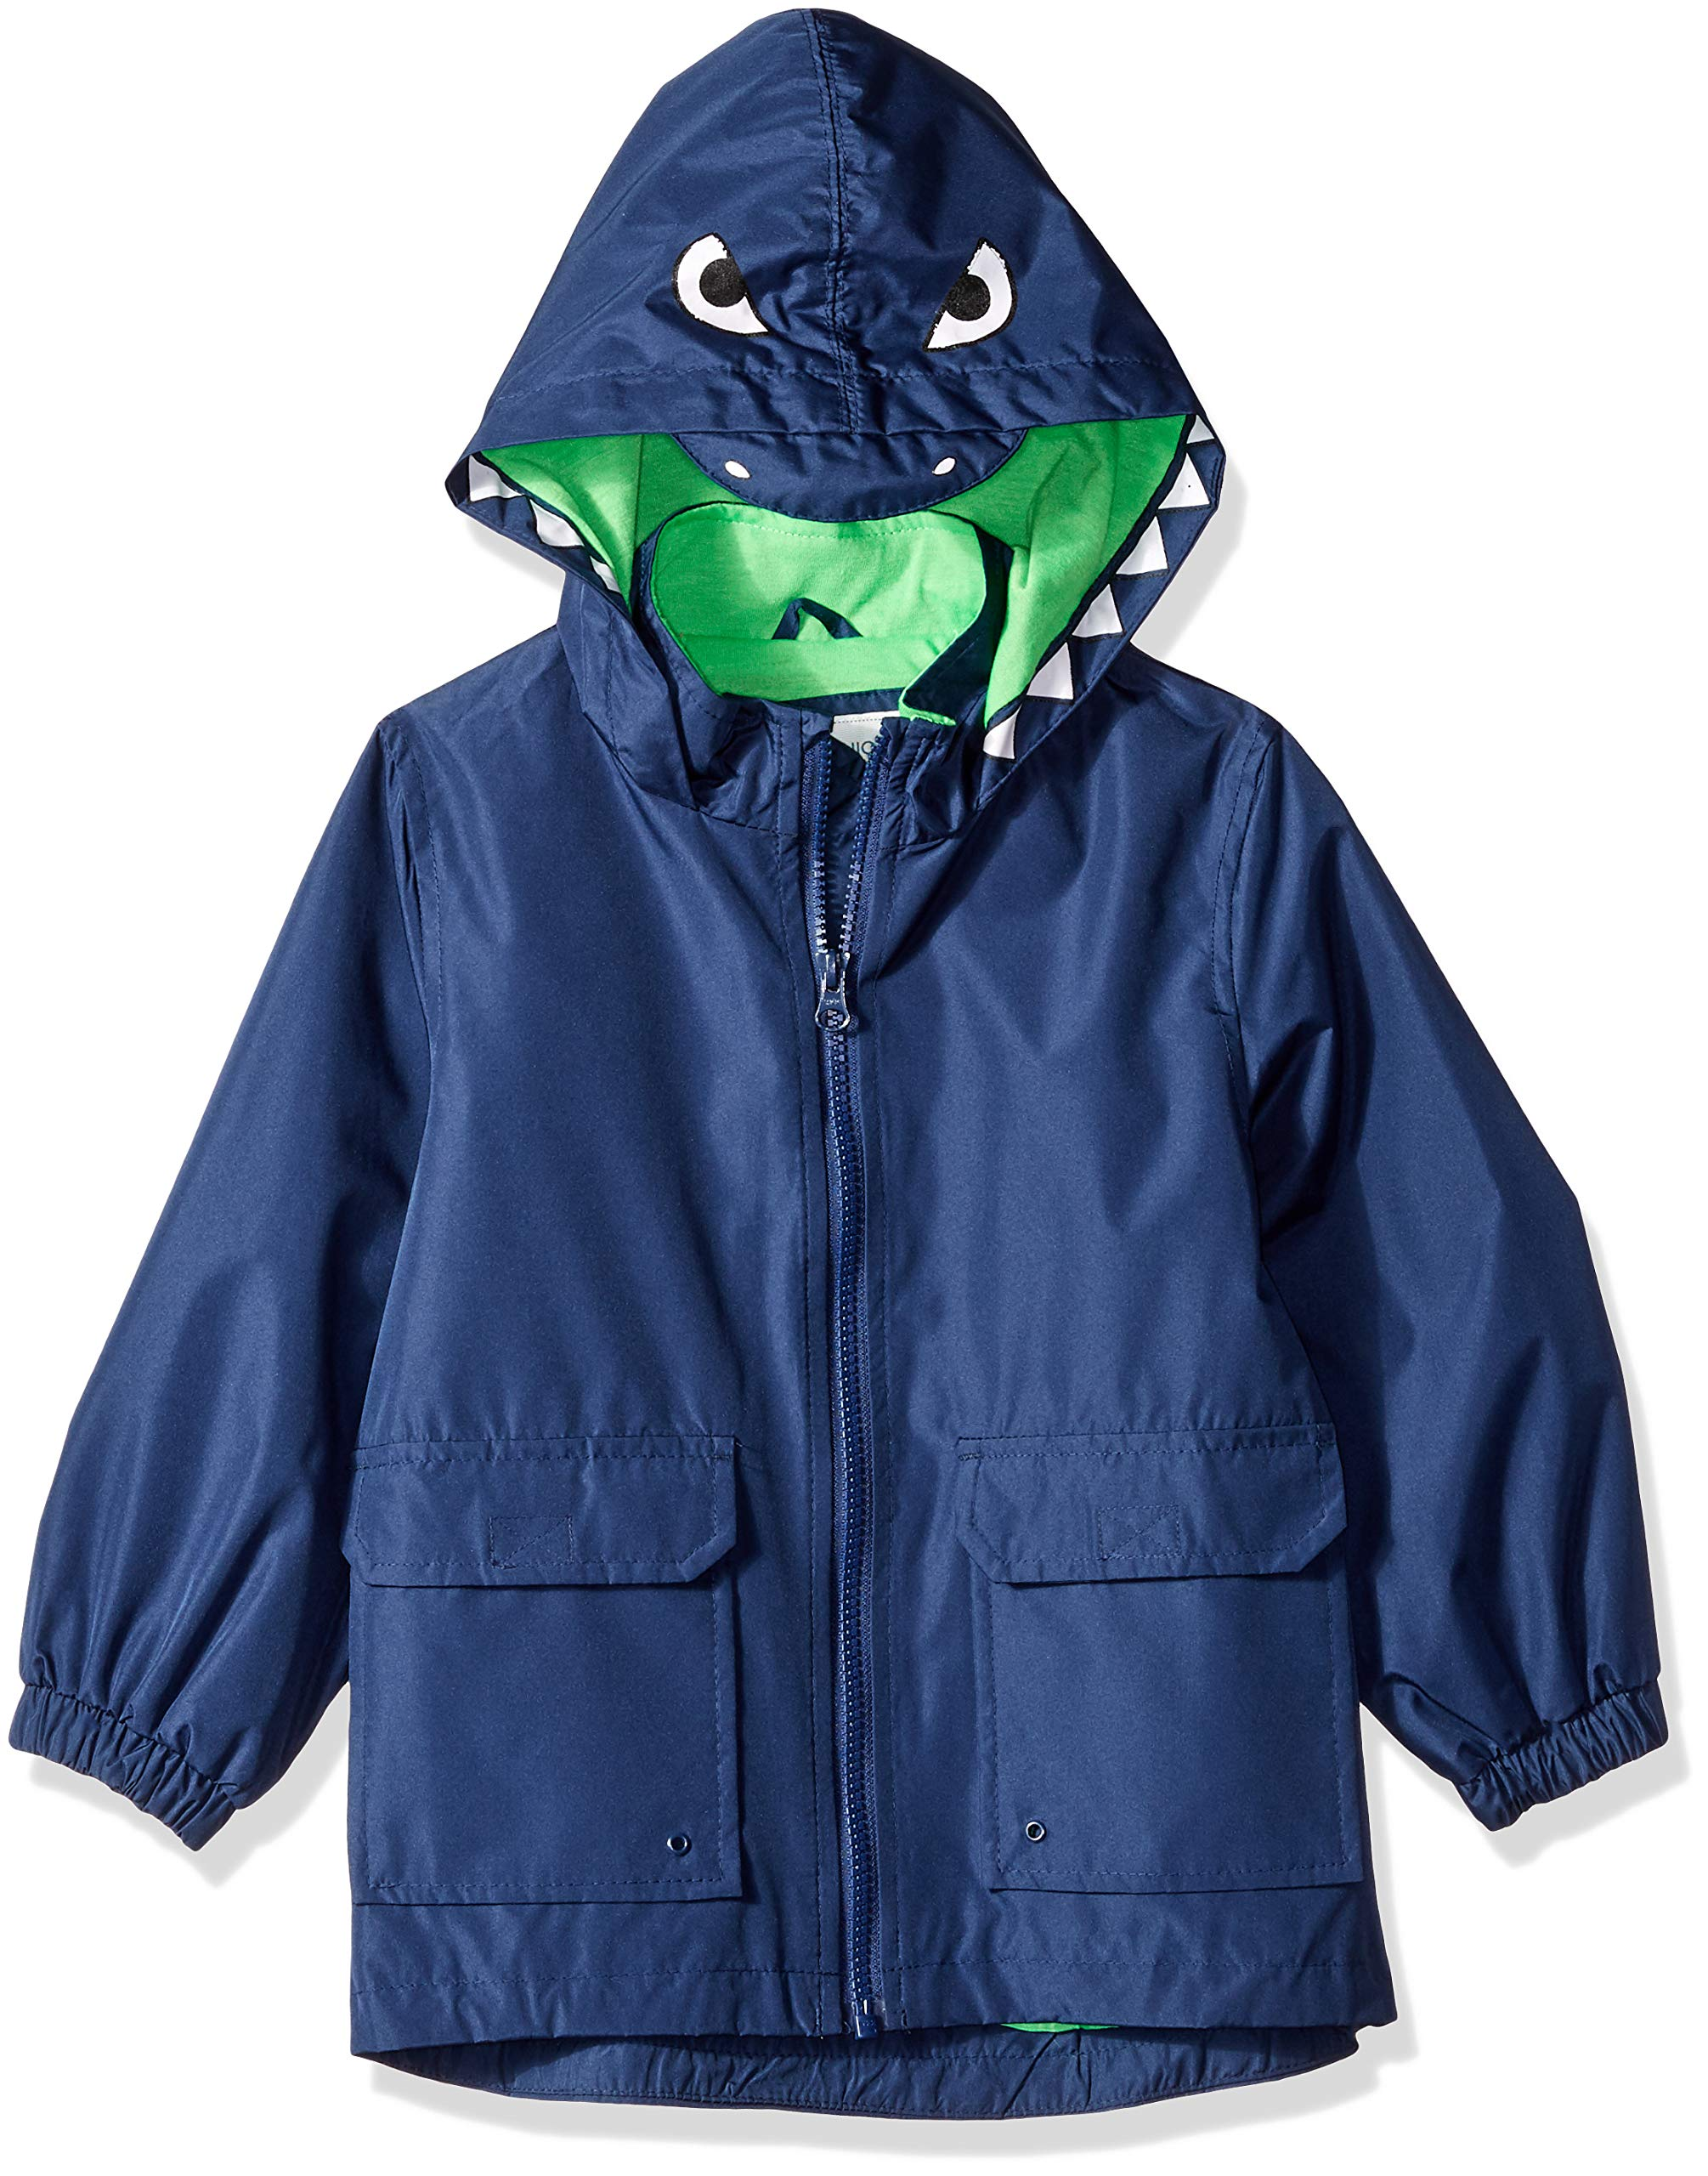 Carter's Little Boys' Critter Rainslicker Lightweight Rain Jacket, Navy Dinosaur, 4T